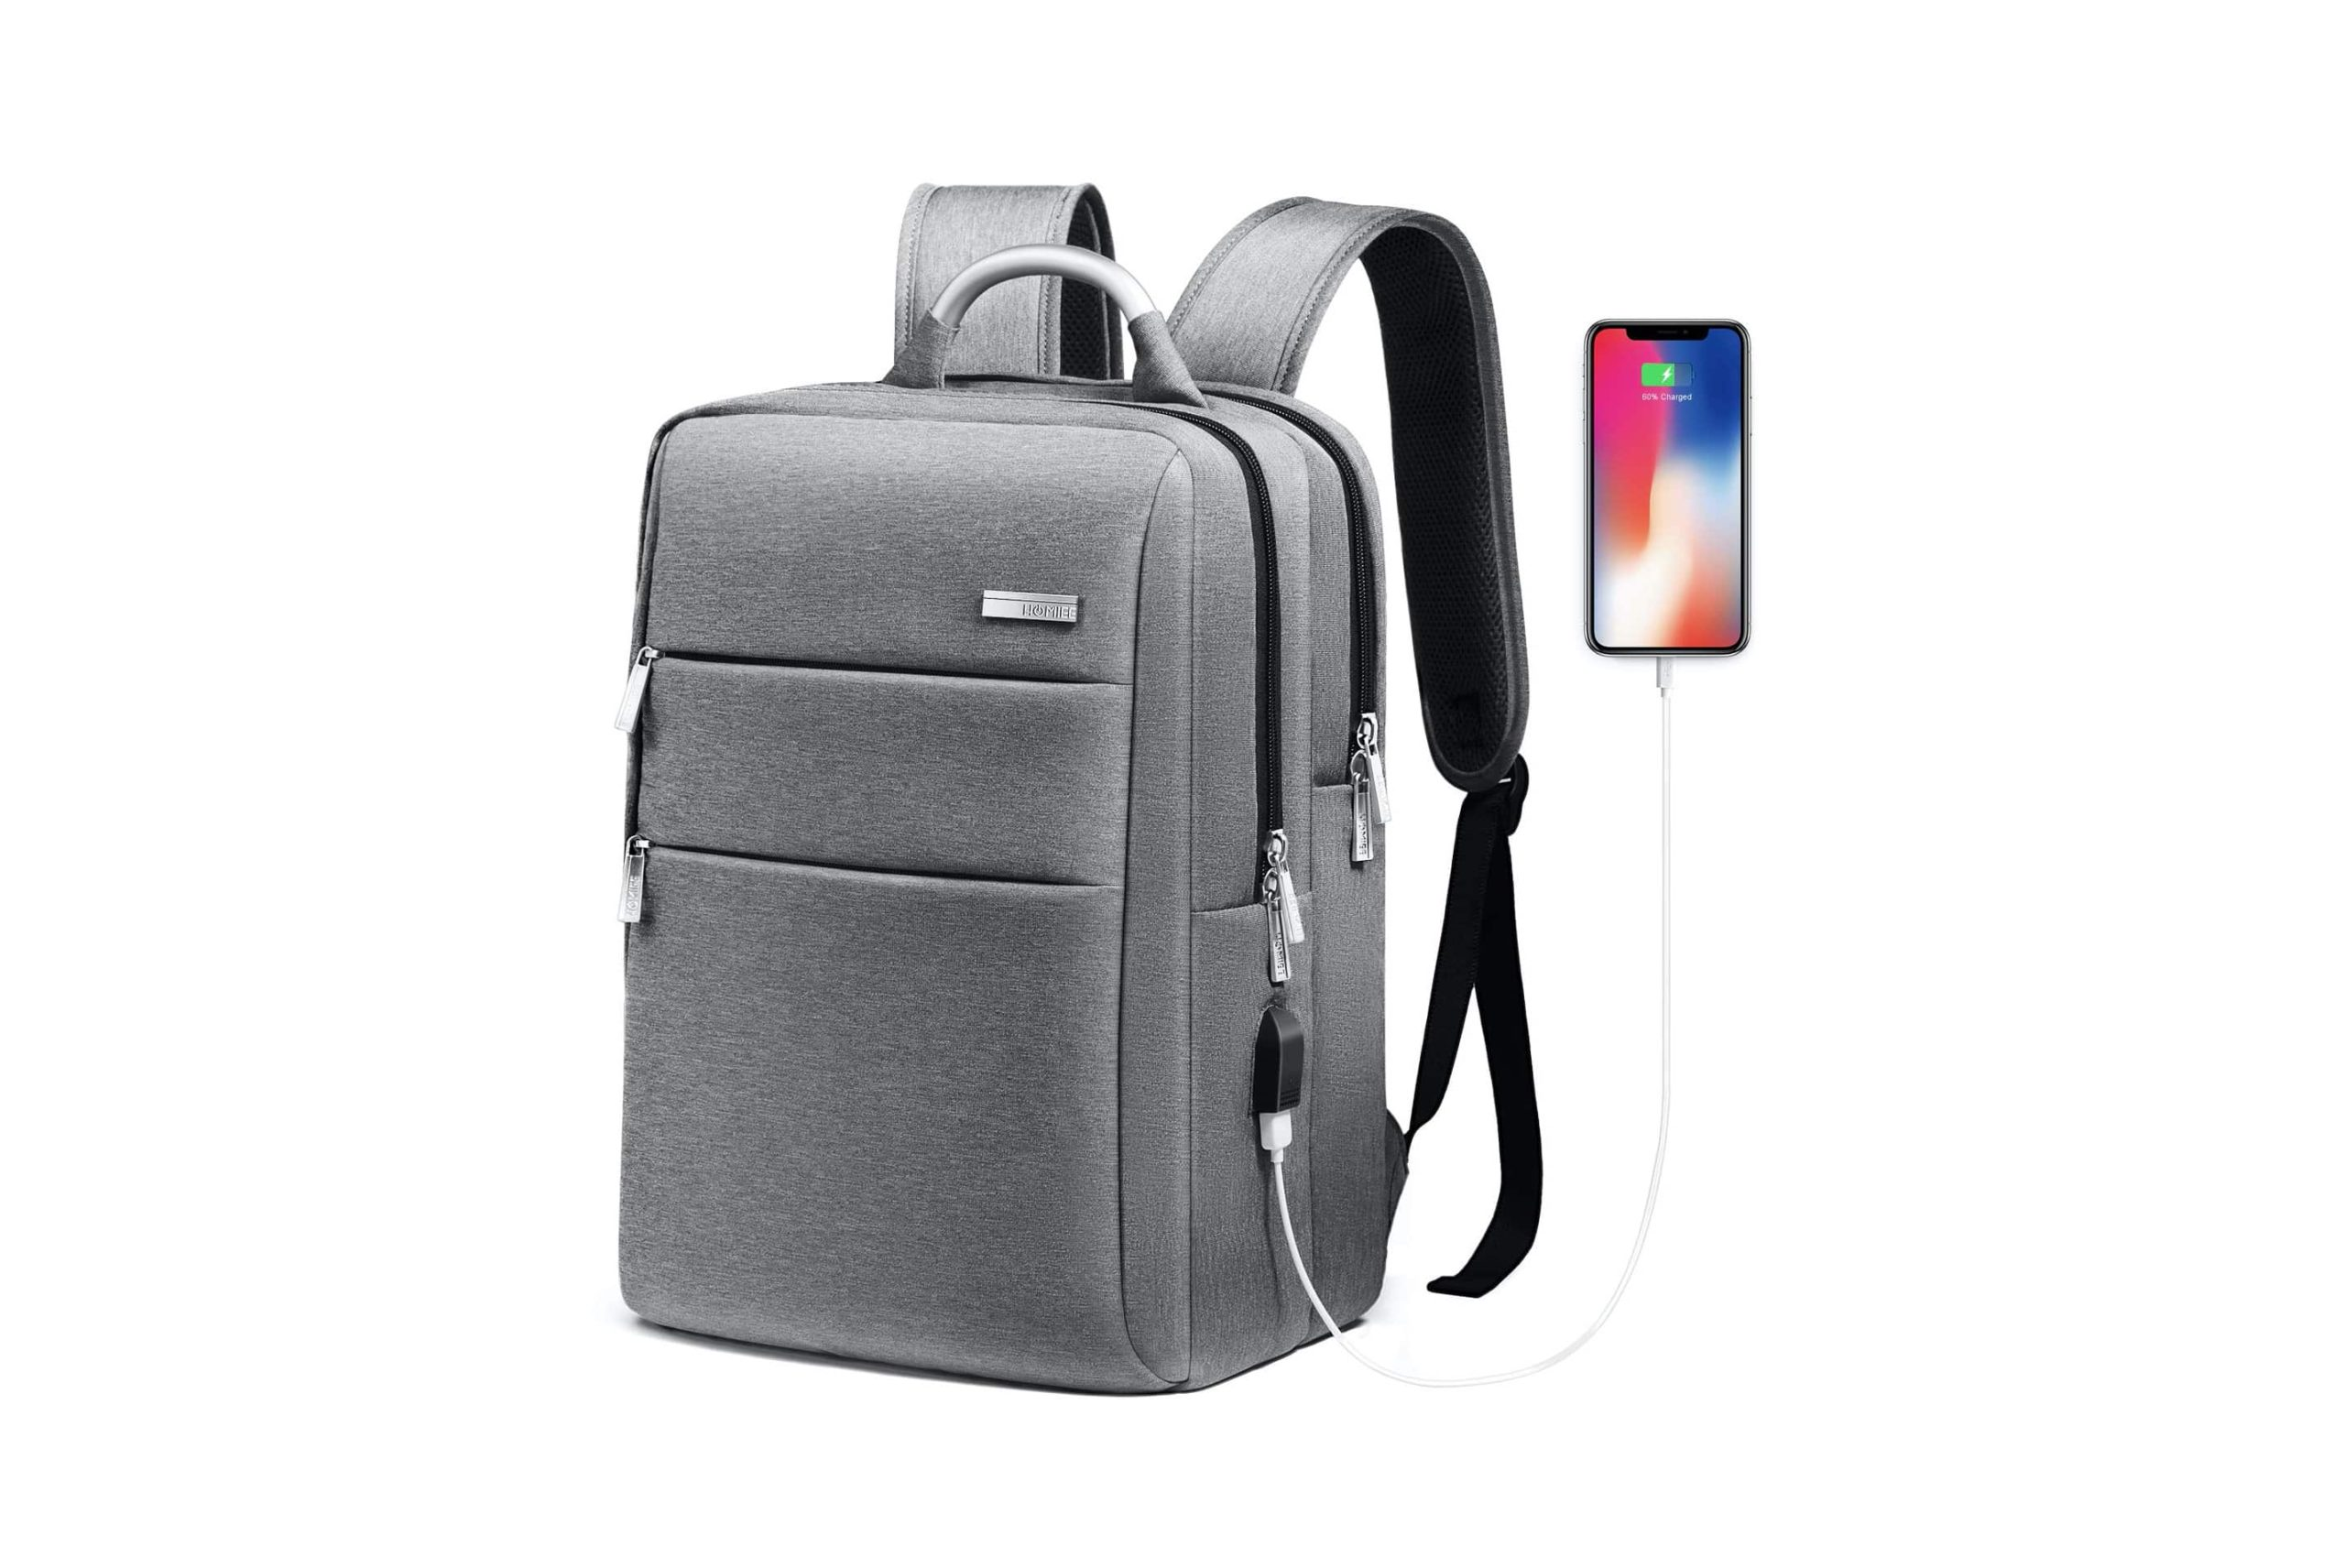 Business Travel Backpack with USB Charging Port -min (1)